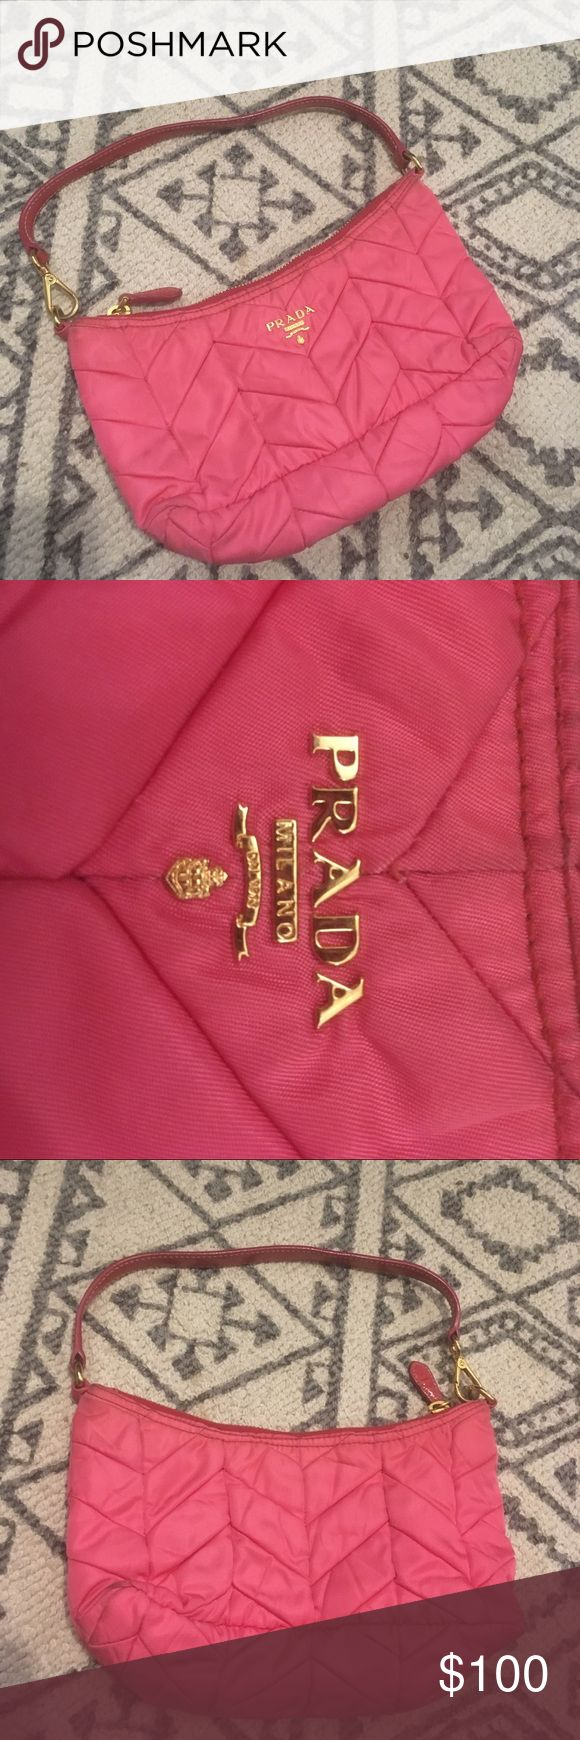 Pink nylon quilted Prada purse Pink nylon quilted Prada purse with gold zipper. Guaranteed authentic. Minor surface wear but overall good condition. 9 inches length , 5 inches width Prada Bags Mini Bags